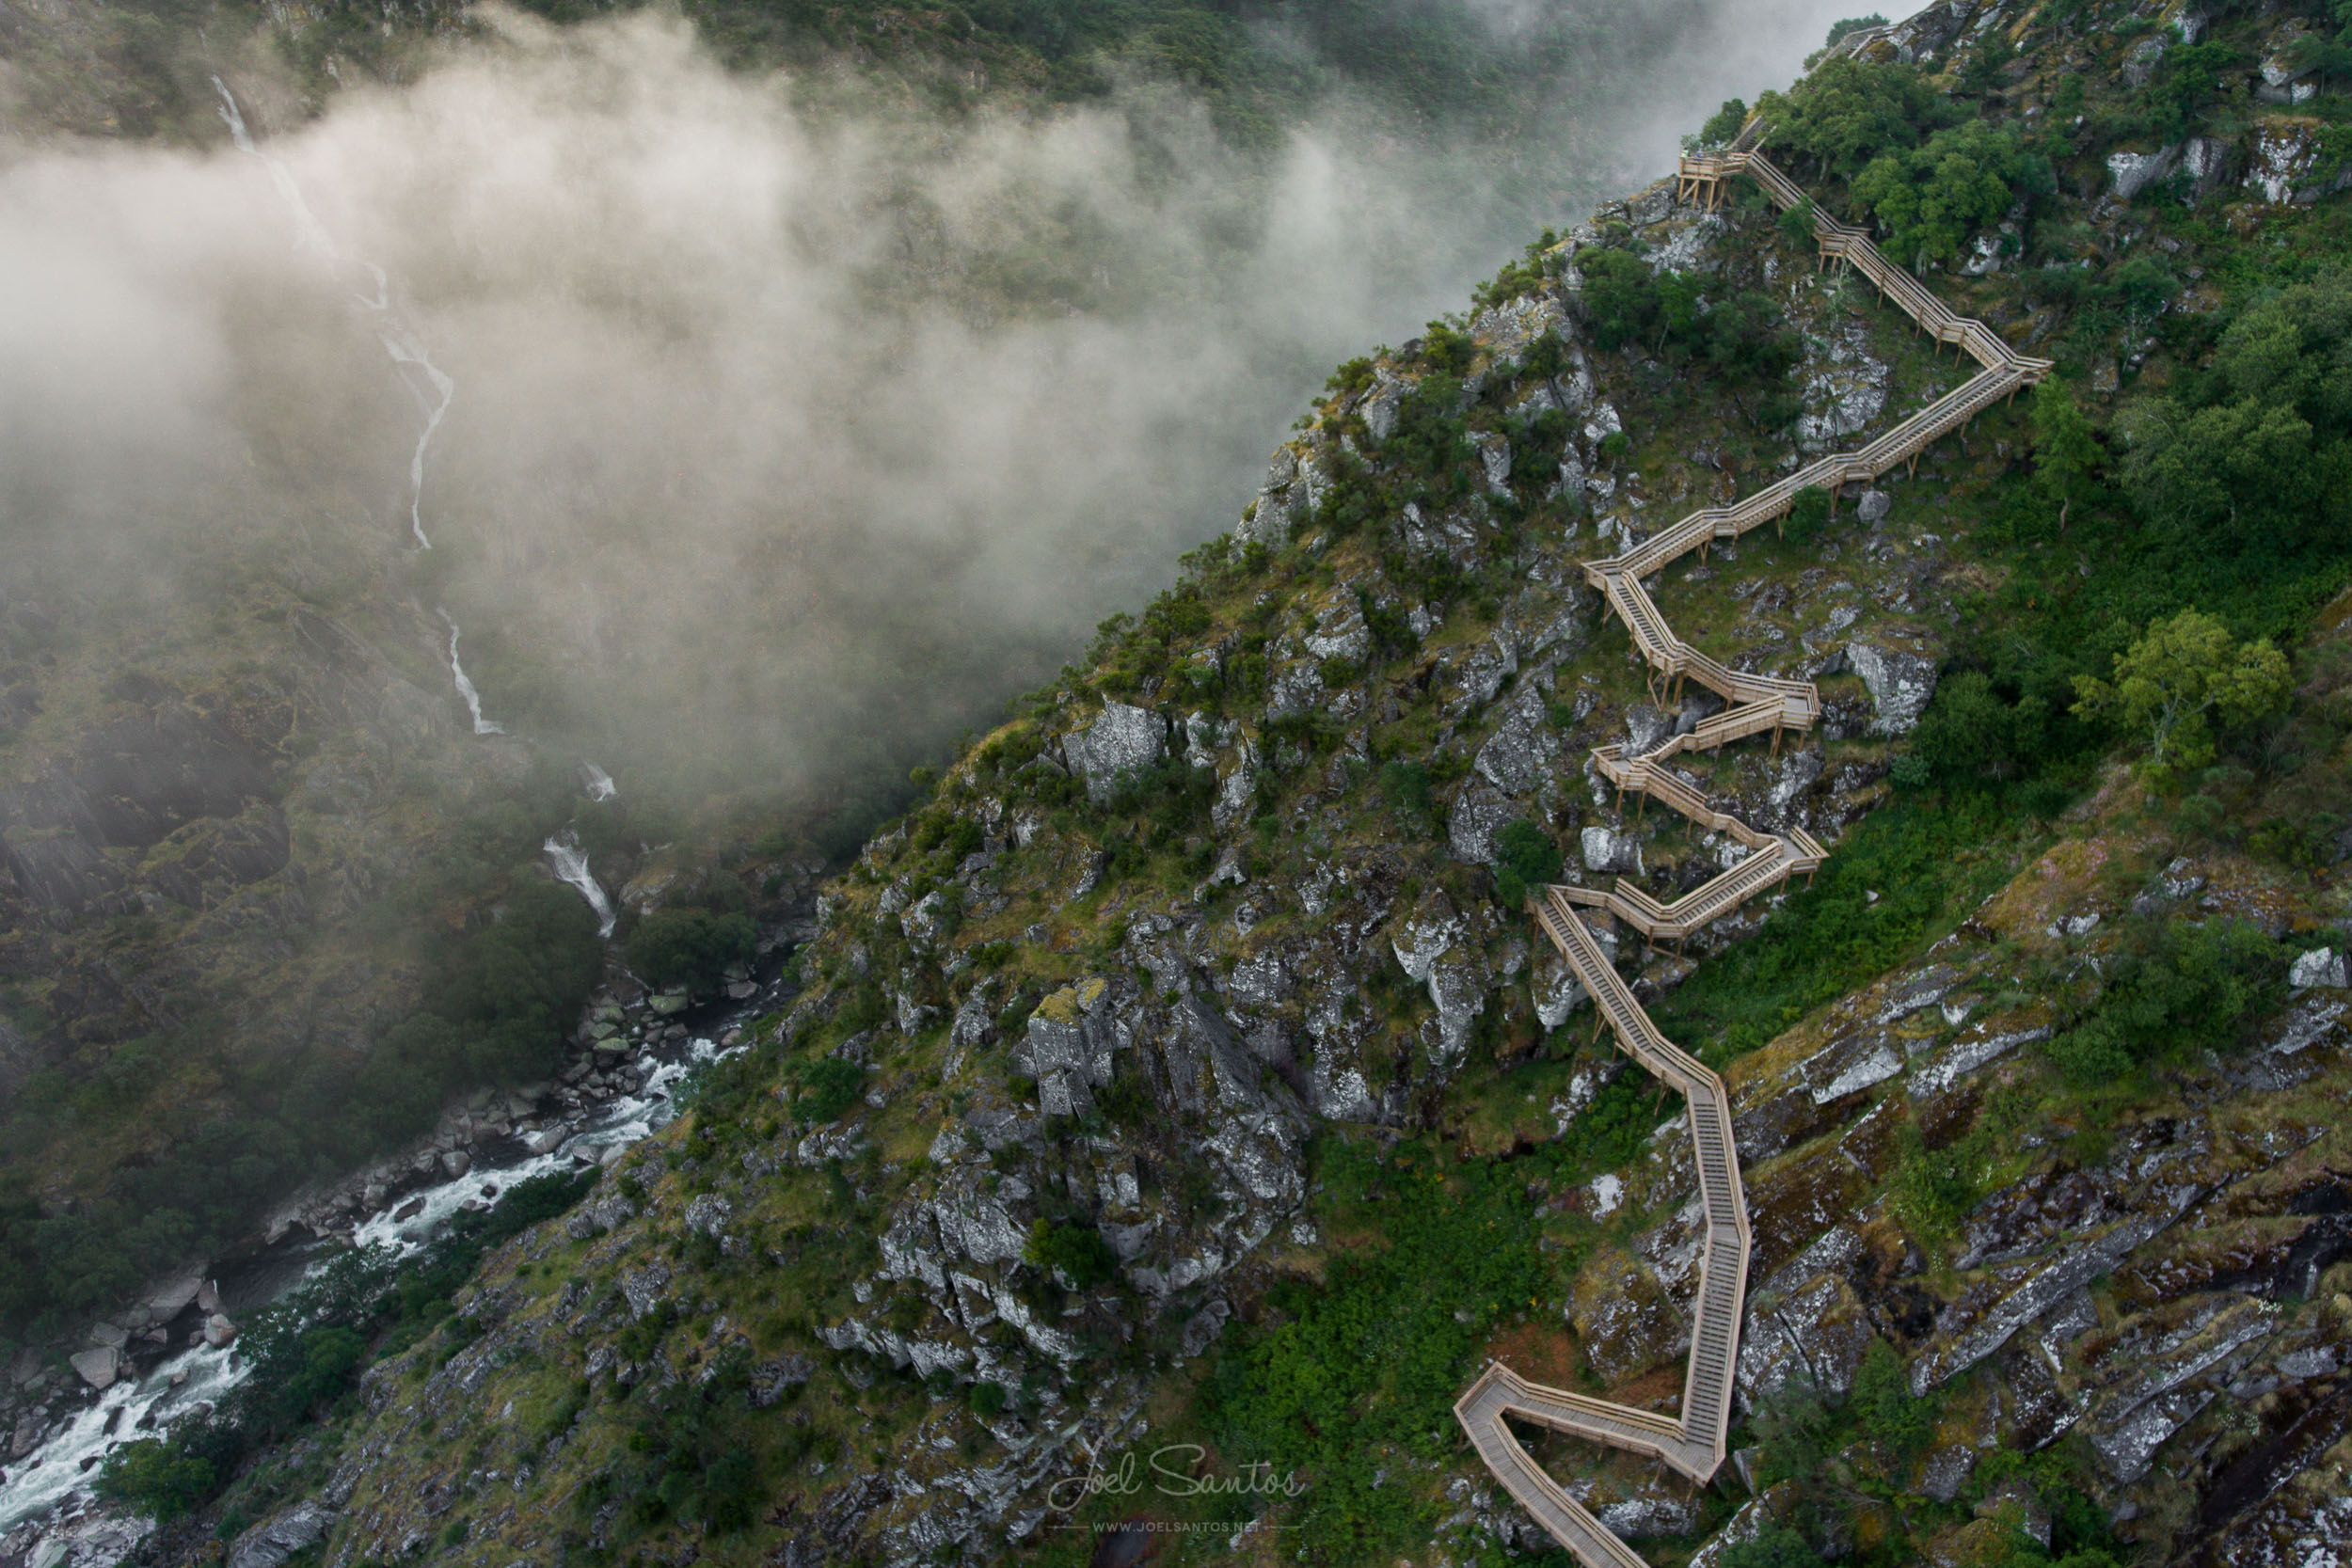 Paiva walkways, Portugal